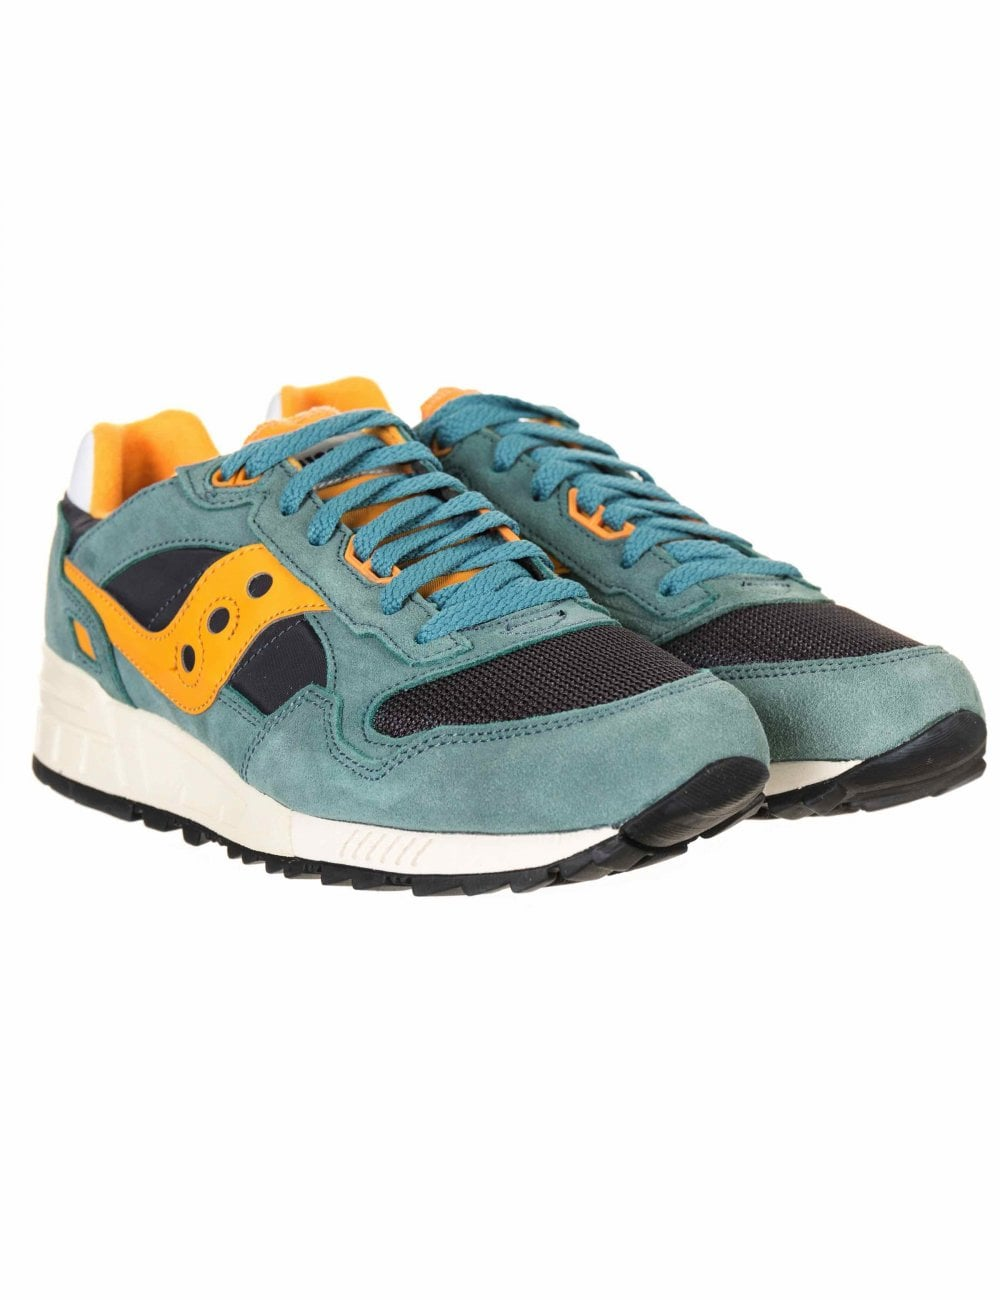 3e92f2a9d427 Saucony Shadow 5000 Vintage Trainers - Teal Blue Orange - Footwear from Fat  Buddha Store UK